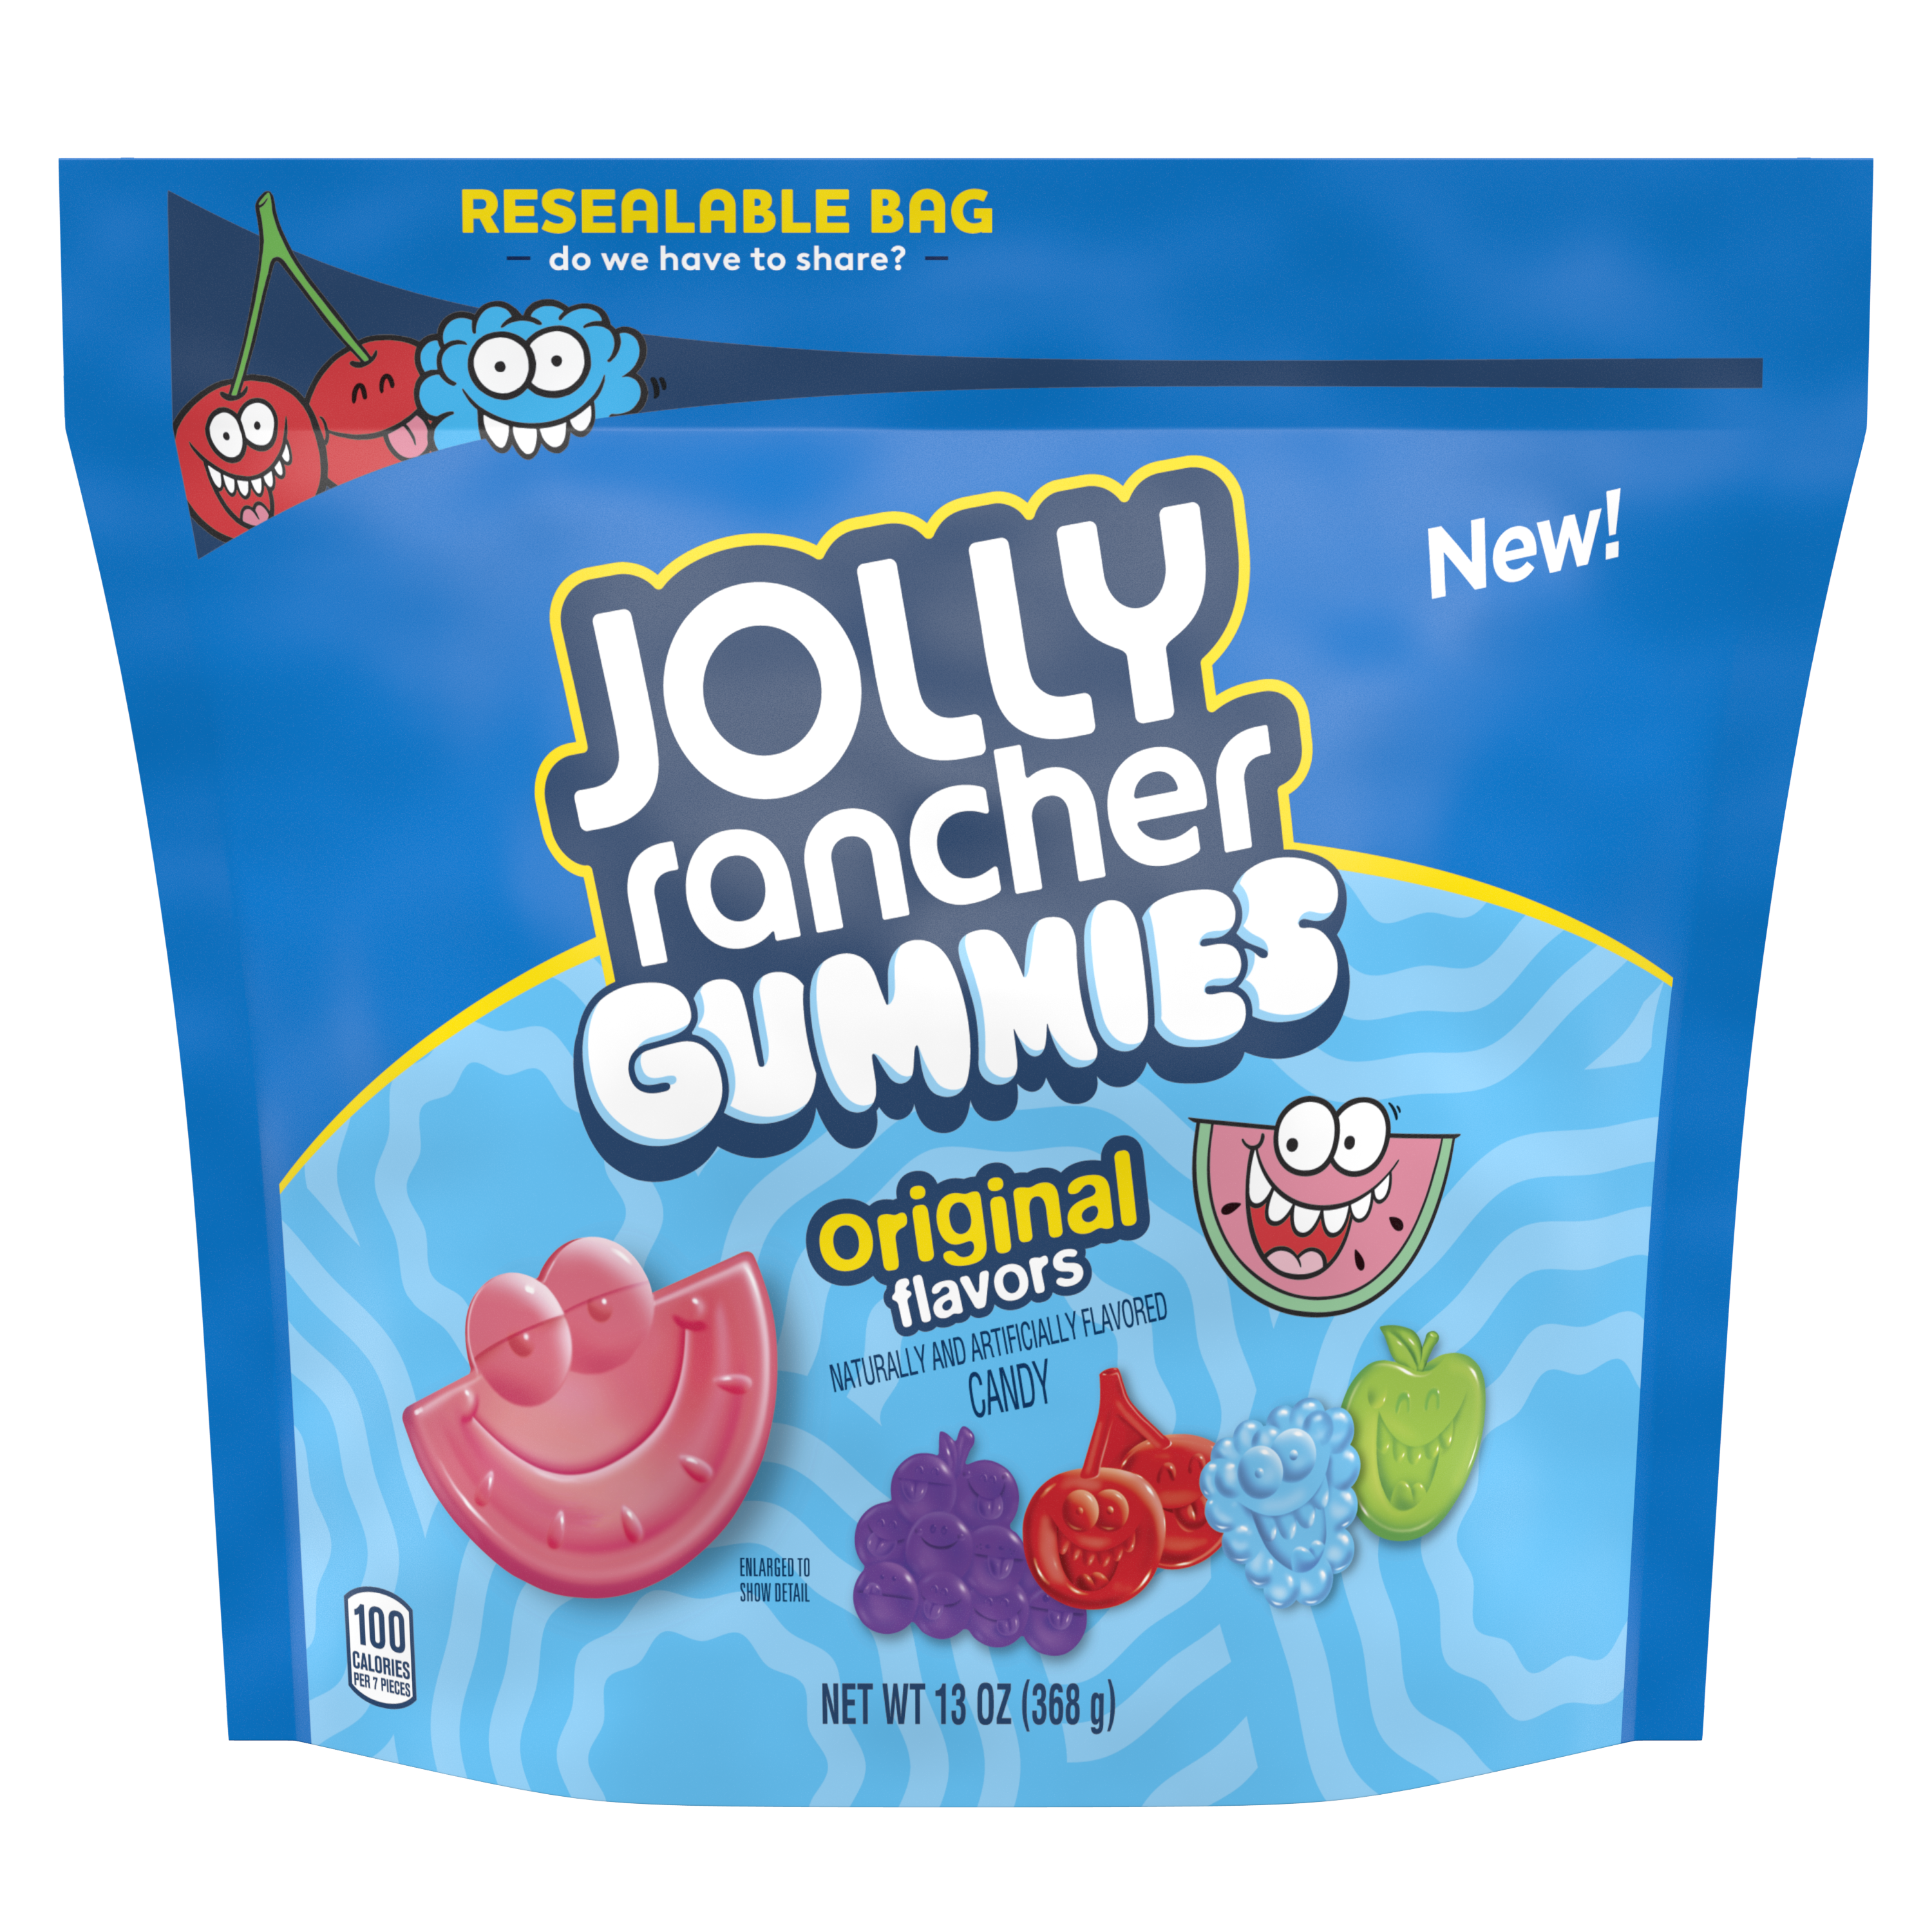 JOLLY RANCHER Gummies Original Flavors, 13 oz bag - Front of Package